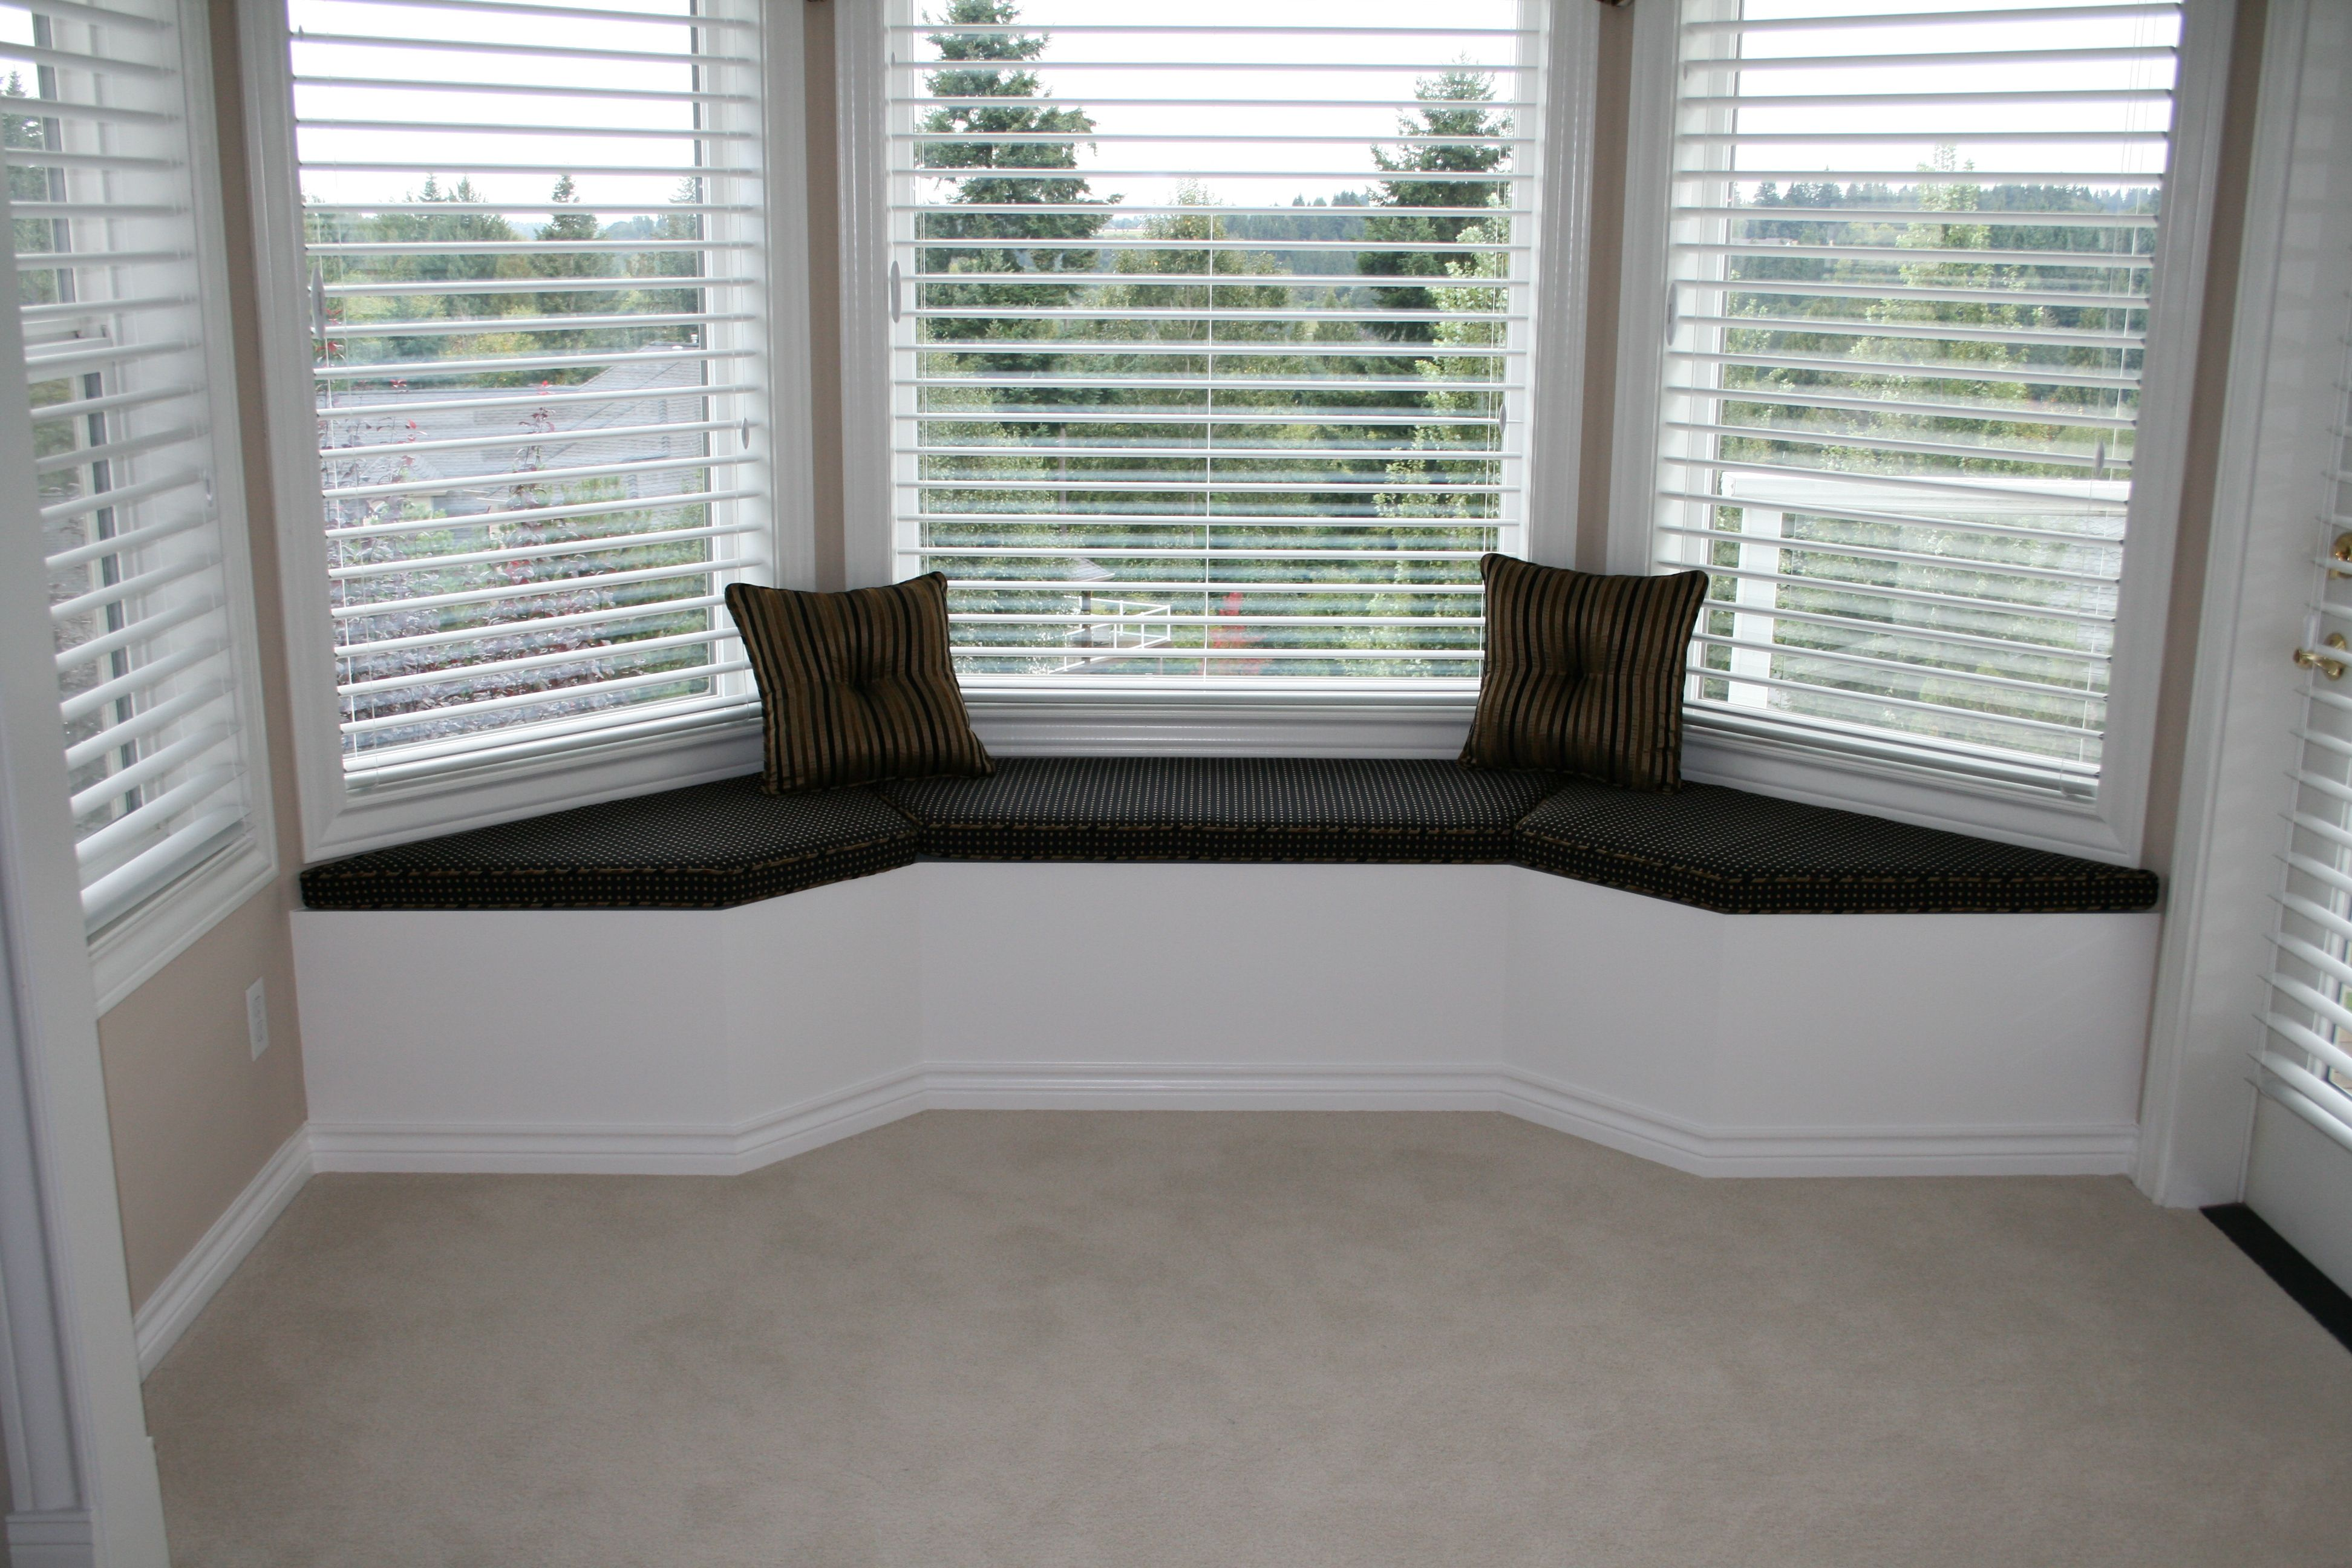 Kitchen Bay Window Bench Seat Is One Of The Home Design